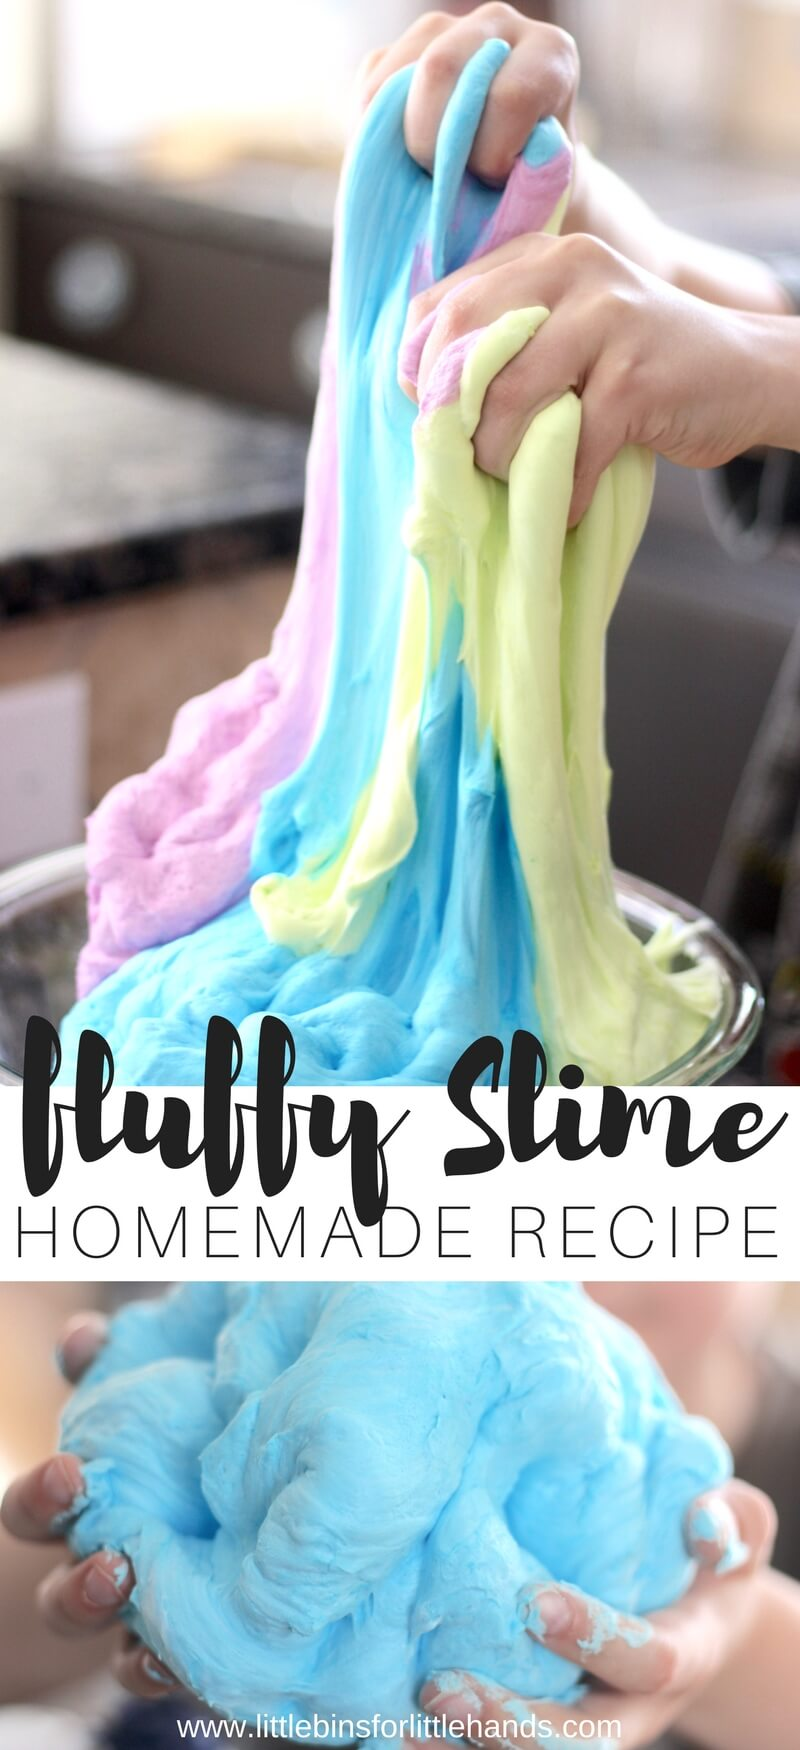 Learn how to make fluffy slime with glue, shaving cream, and saline solution. Making slime is fun and easy with our homemade slime recipes!